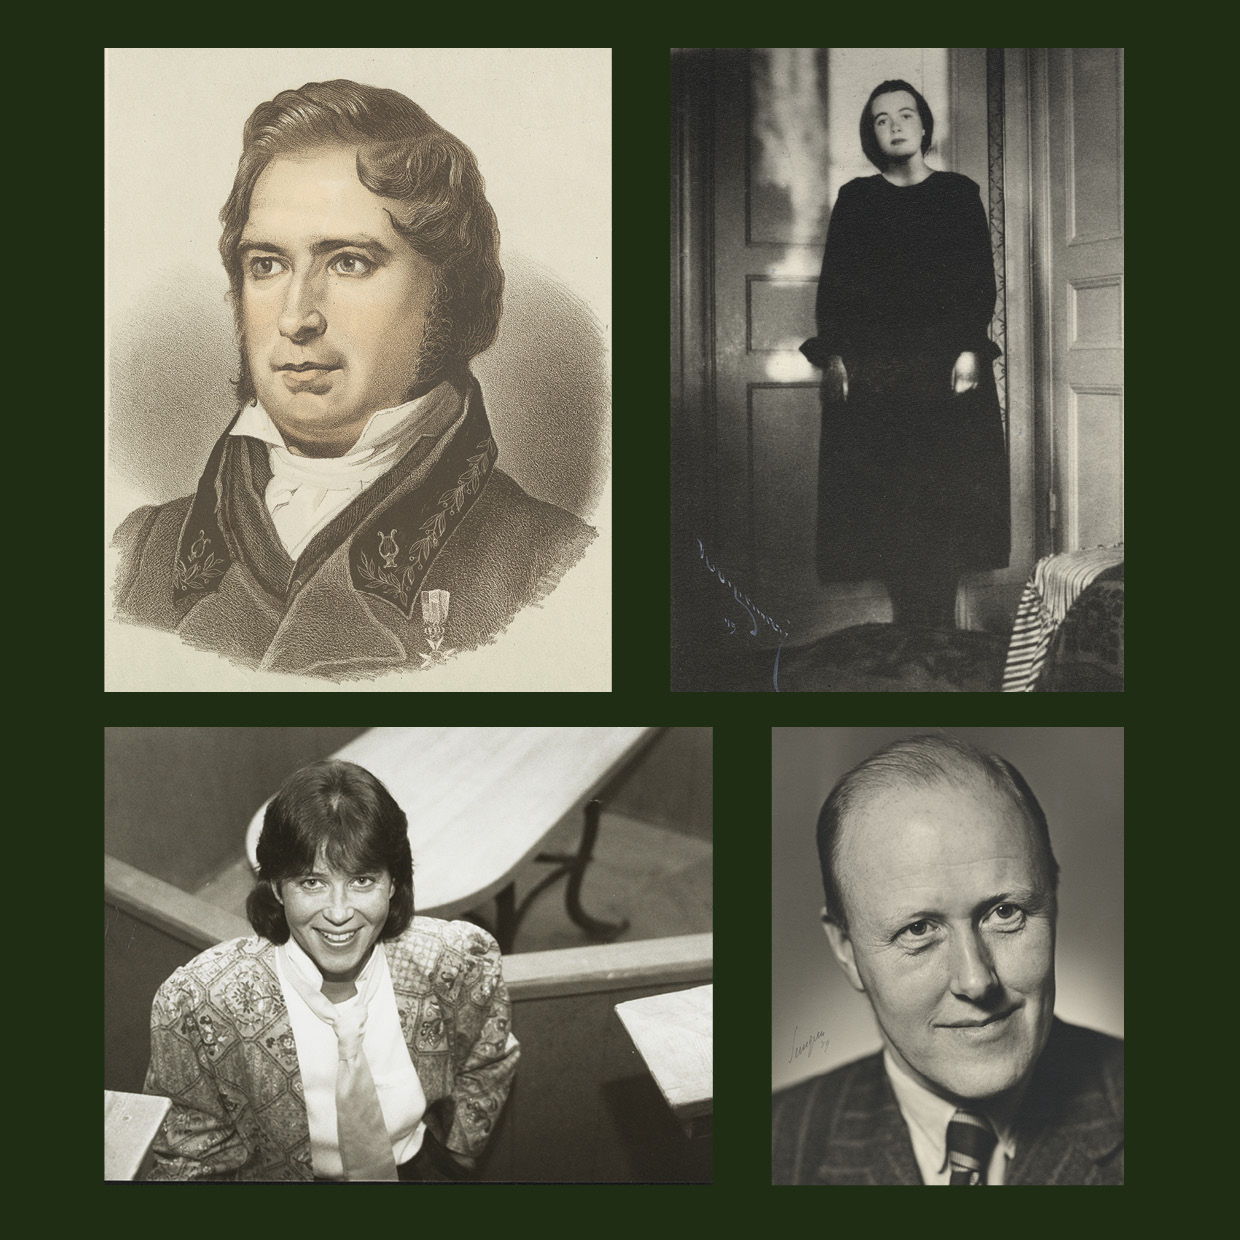 portraits of Geijer, Segerstedt, Johannisson and Karin Boye